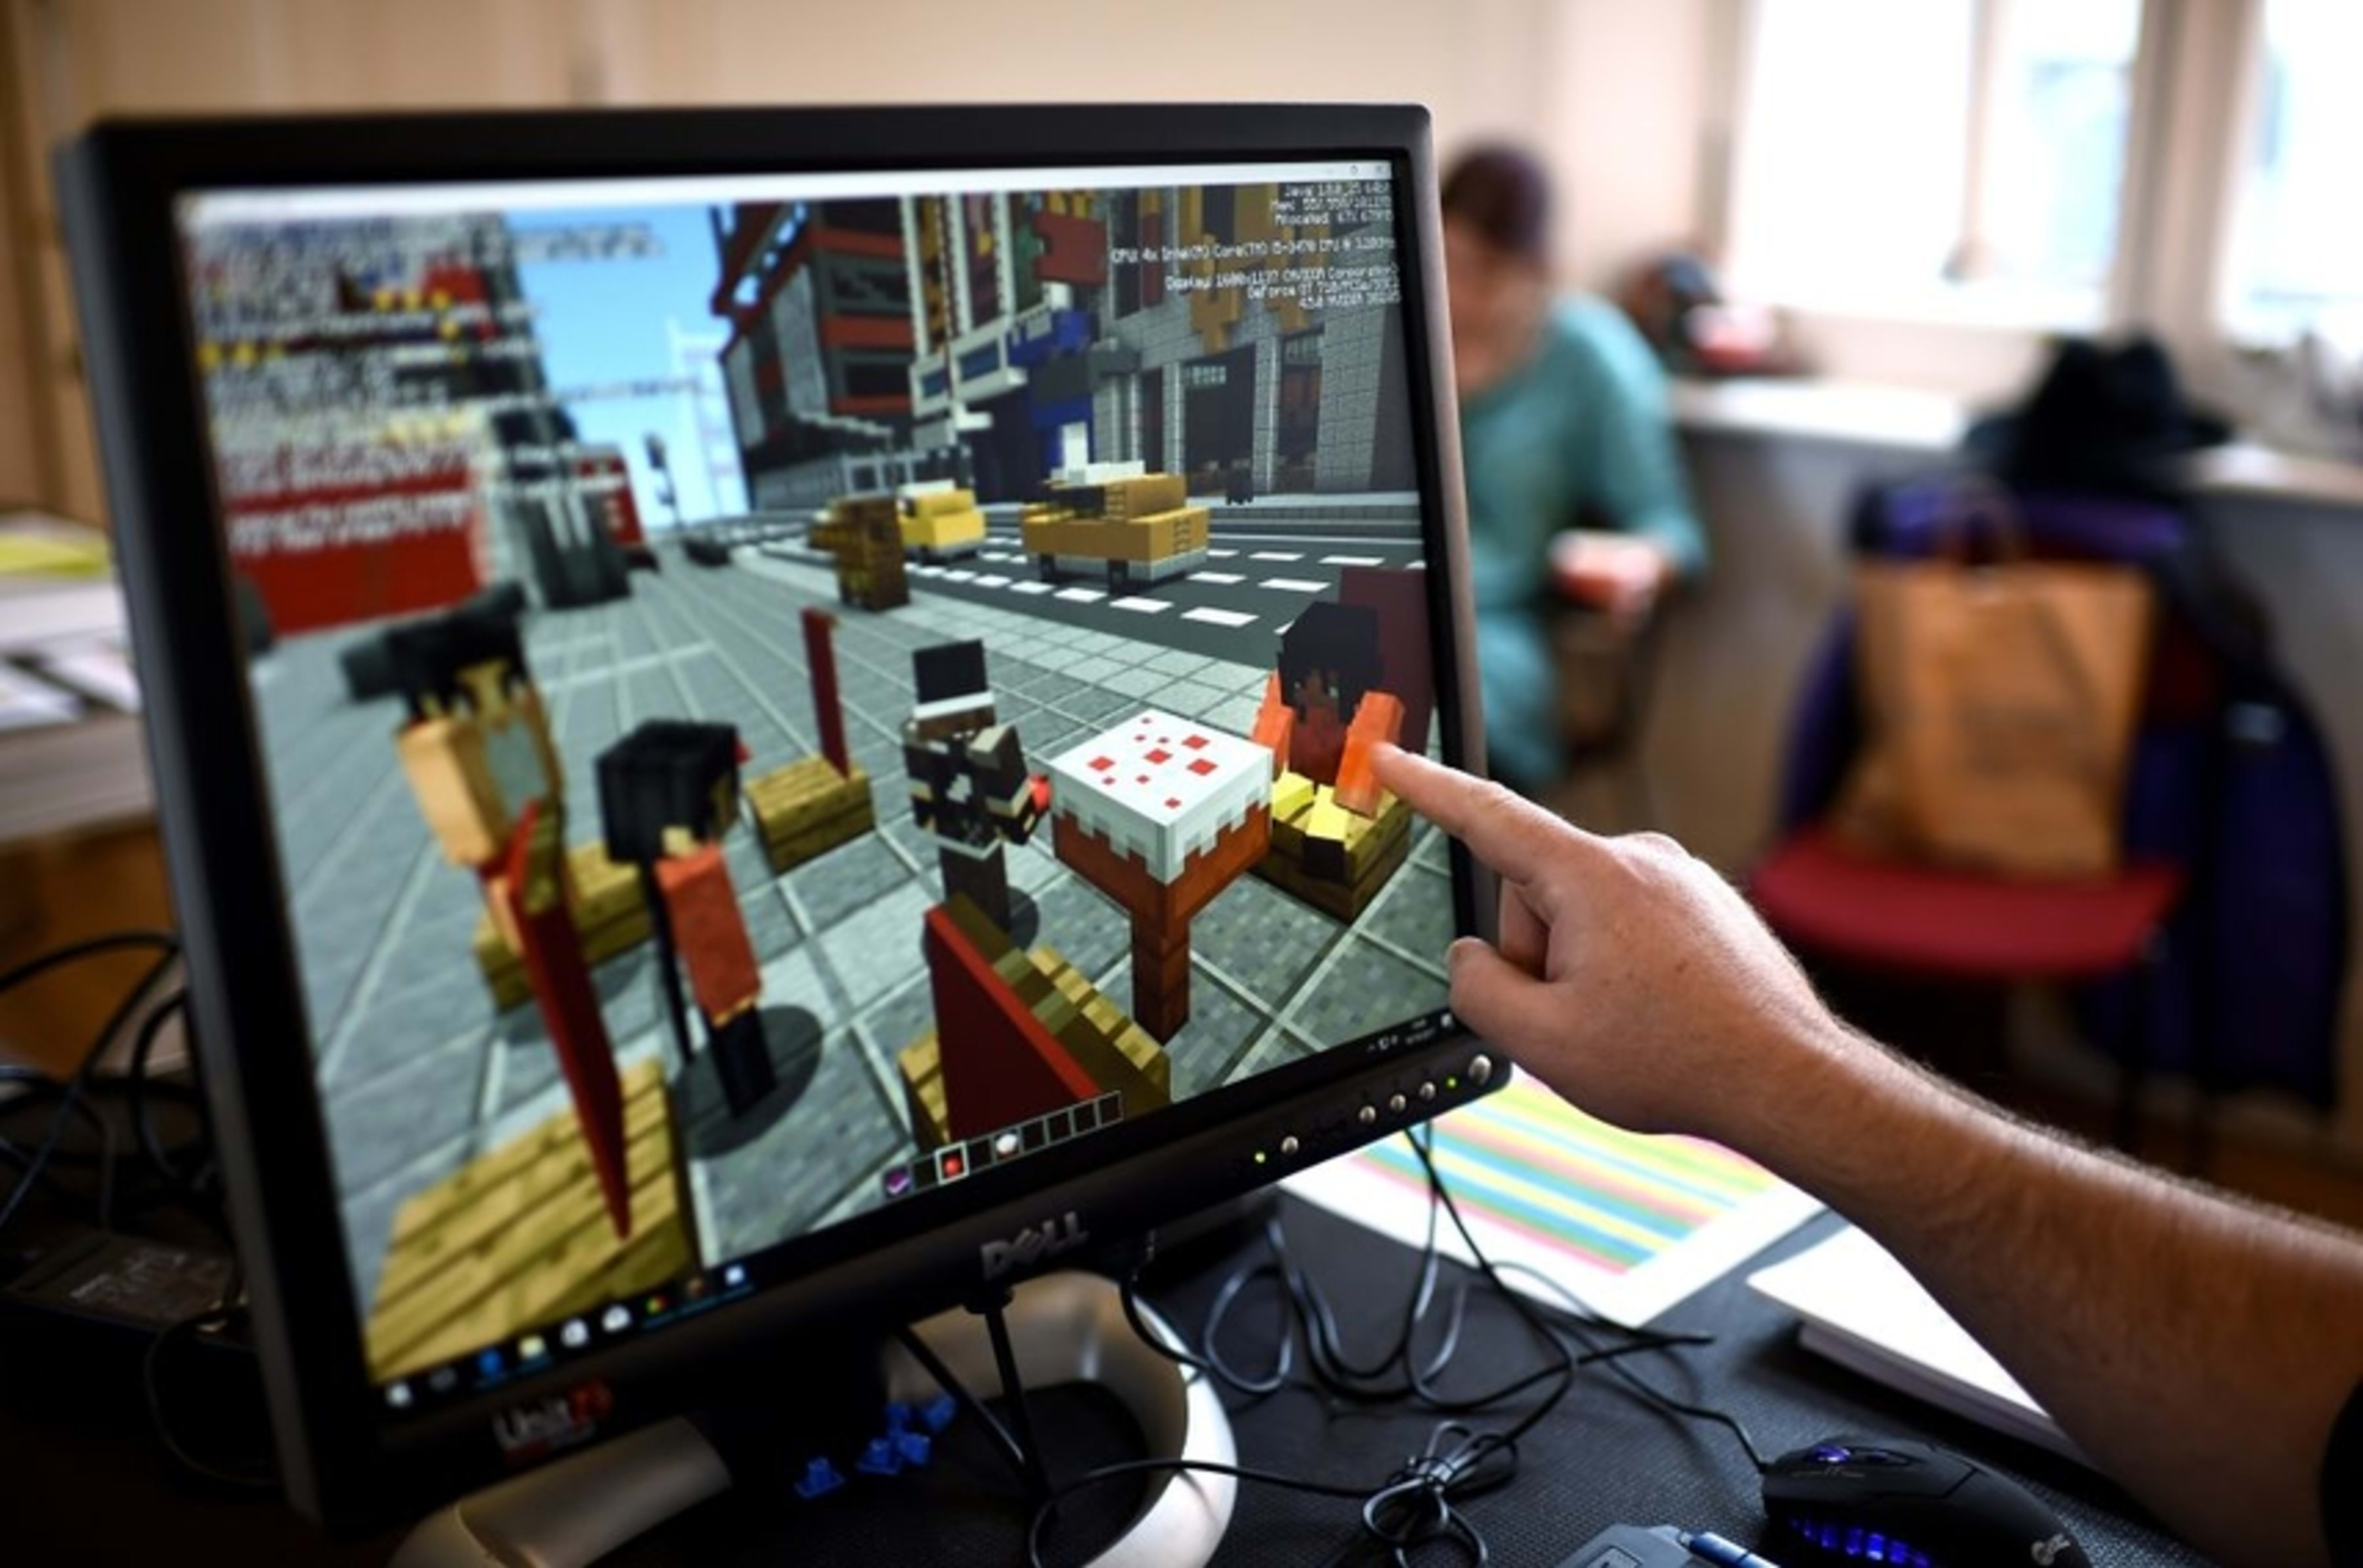 What impact do different types of computer games have on your ...